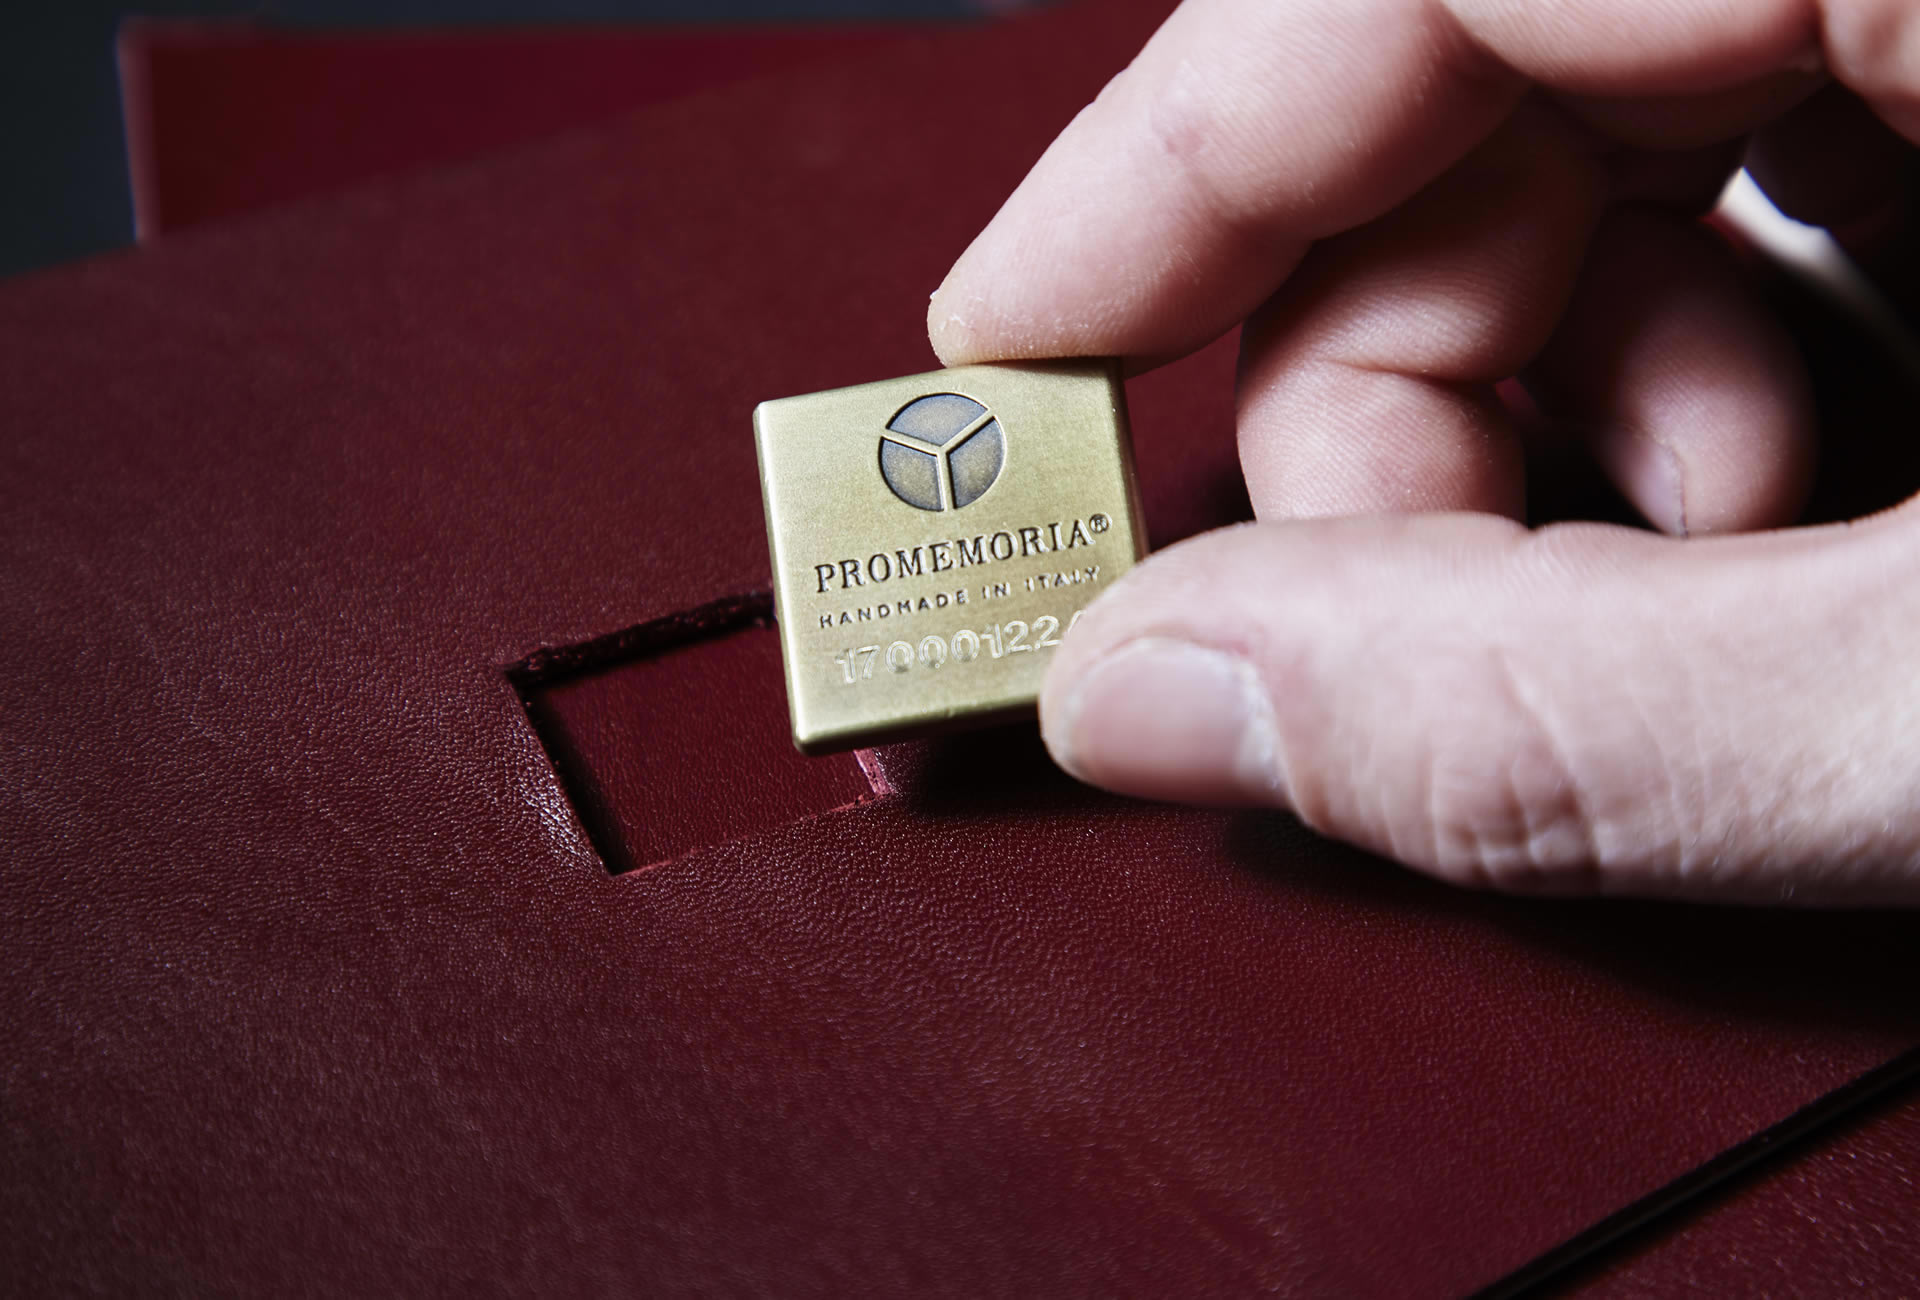 Promemoria has a quality and authenticity control process: every Promemoria product has a serial number and a Certificate of Authenticity | Promemoria